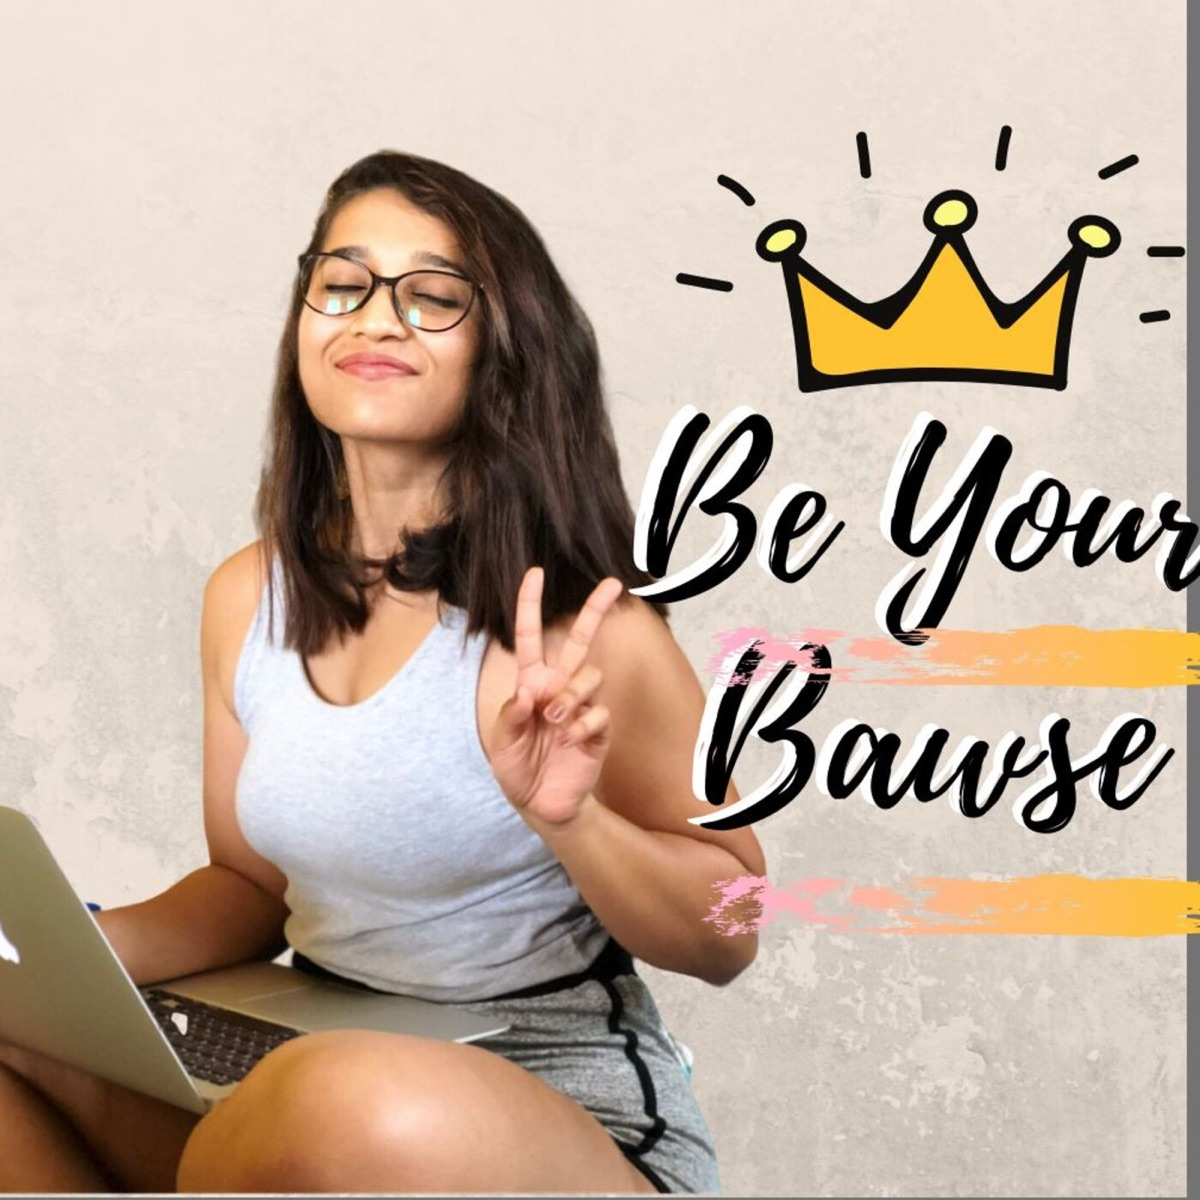 Be Your Bawse